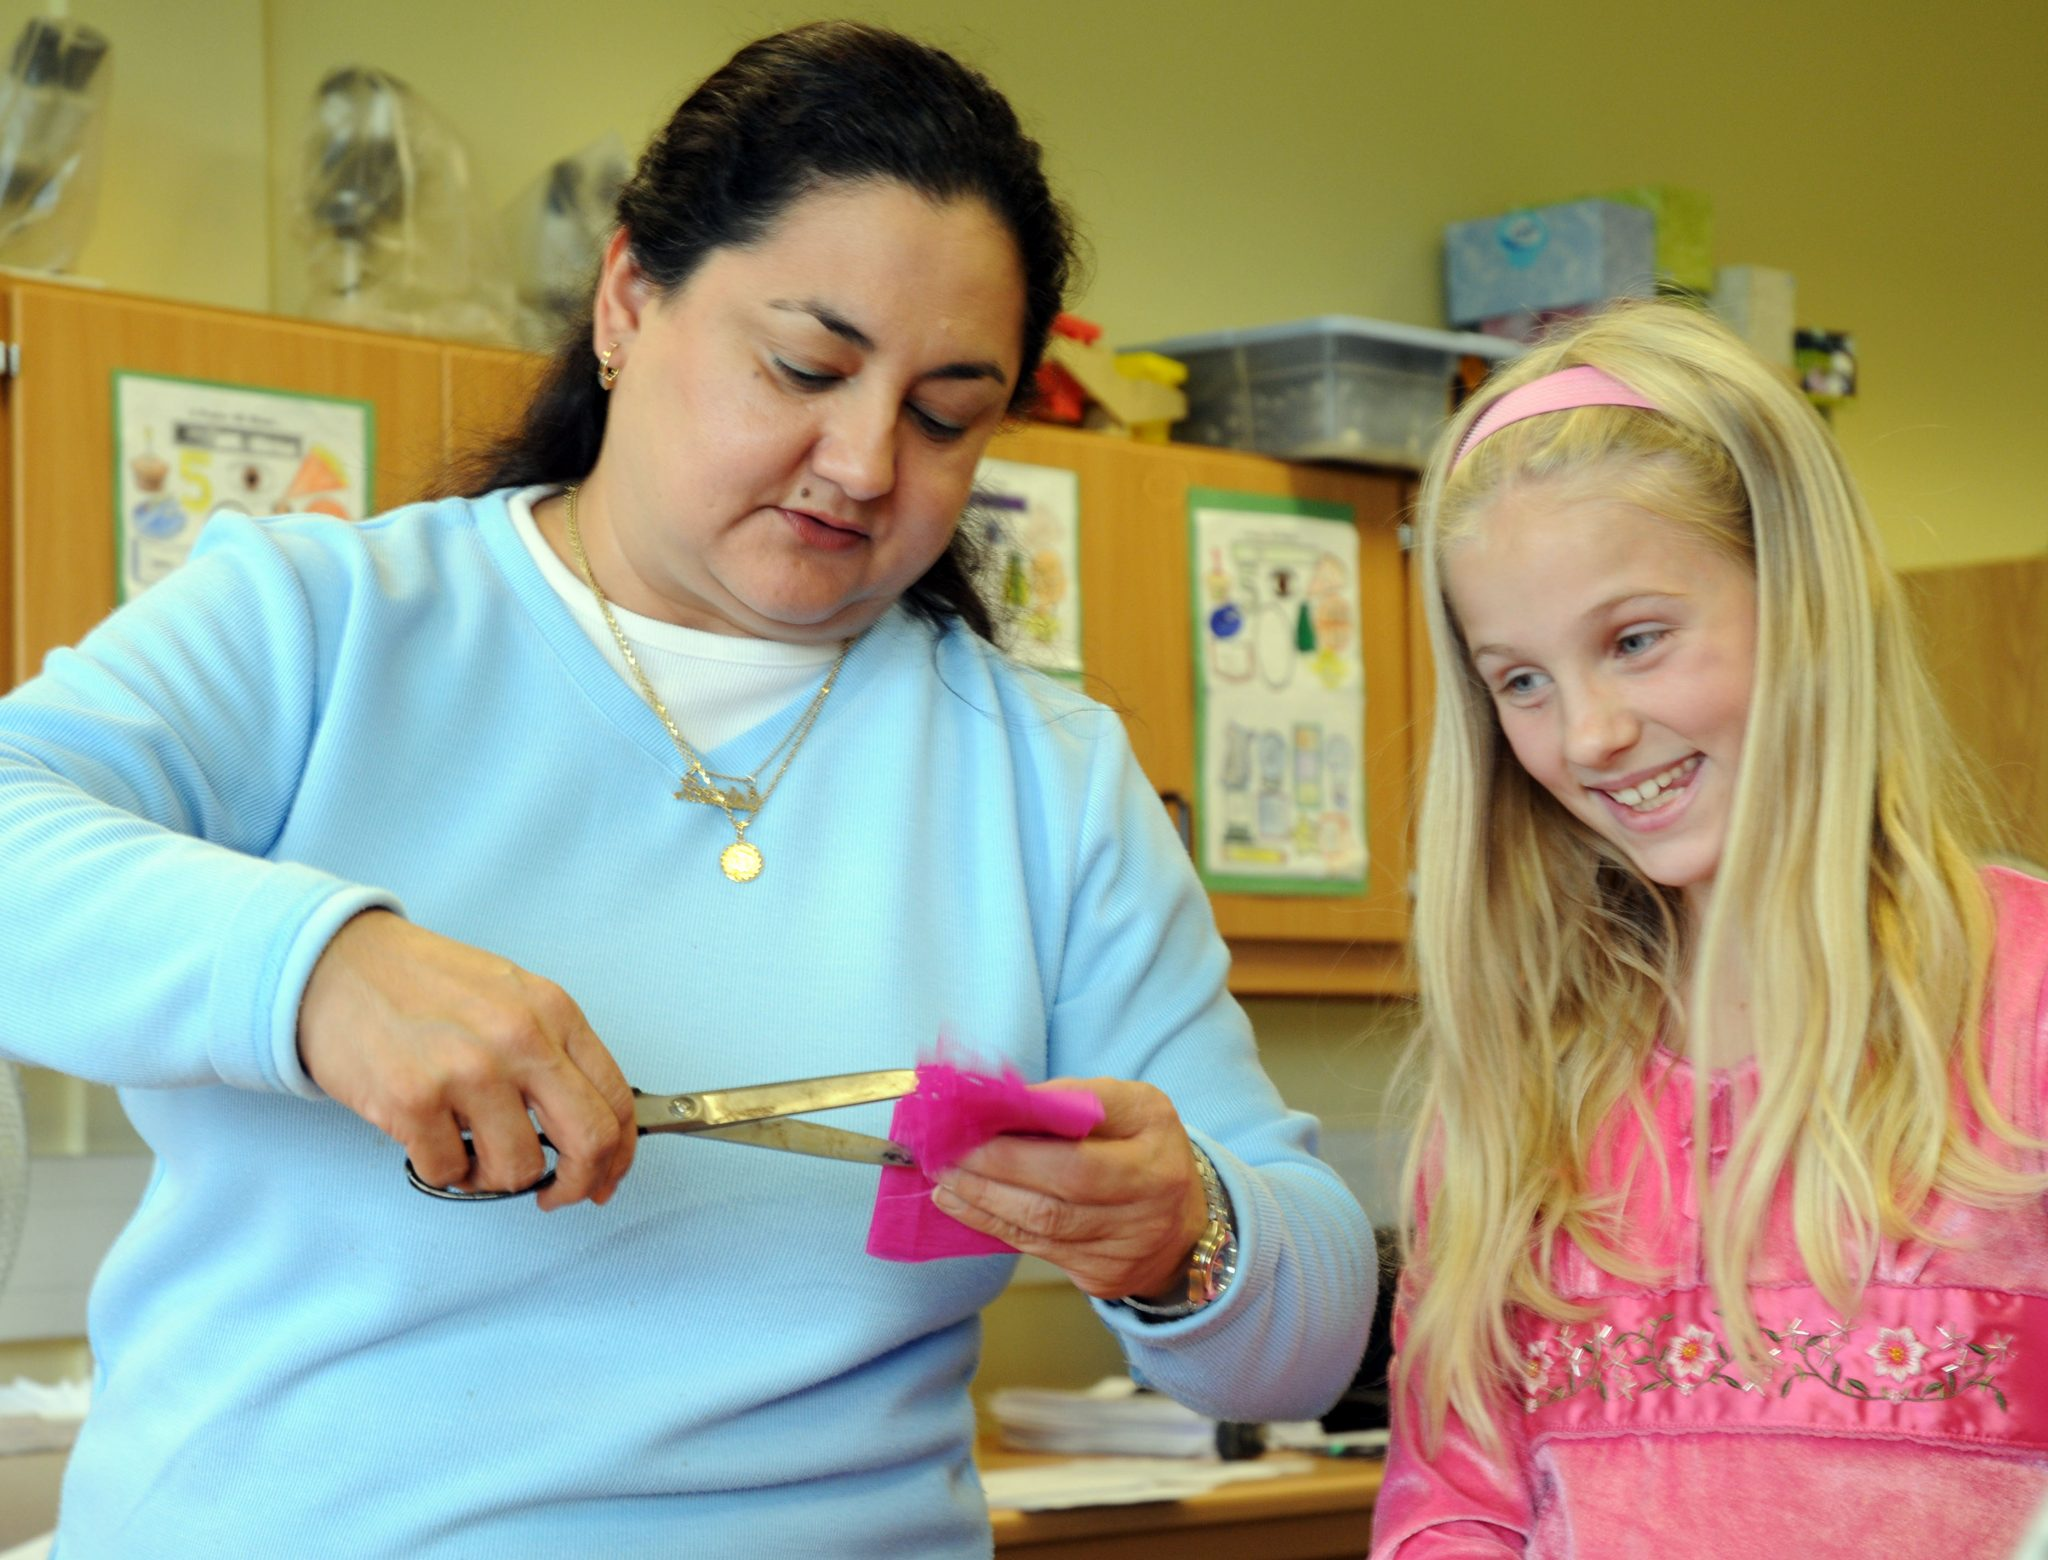 Kids Need More From School Utilize Assistant Teachers